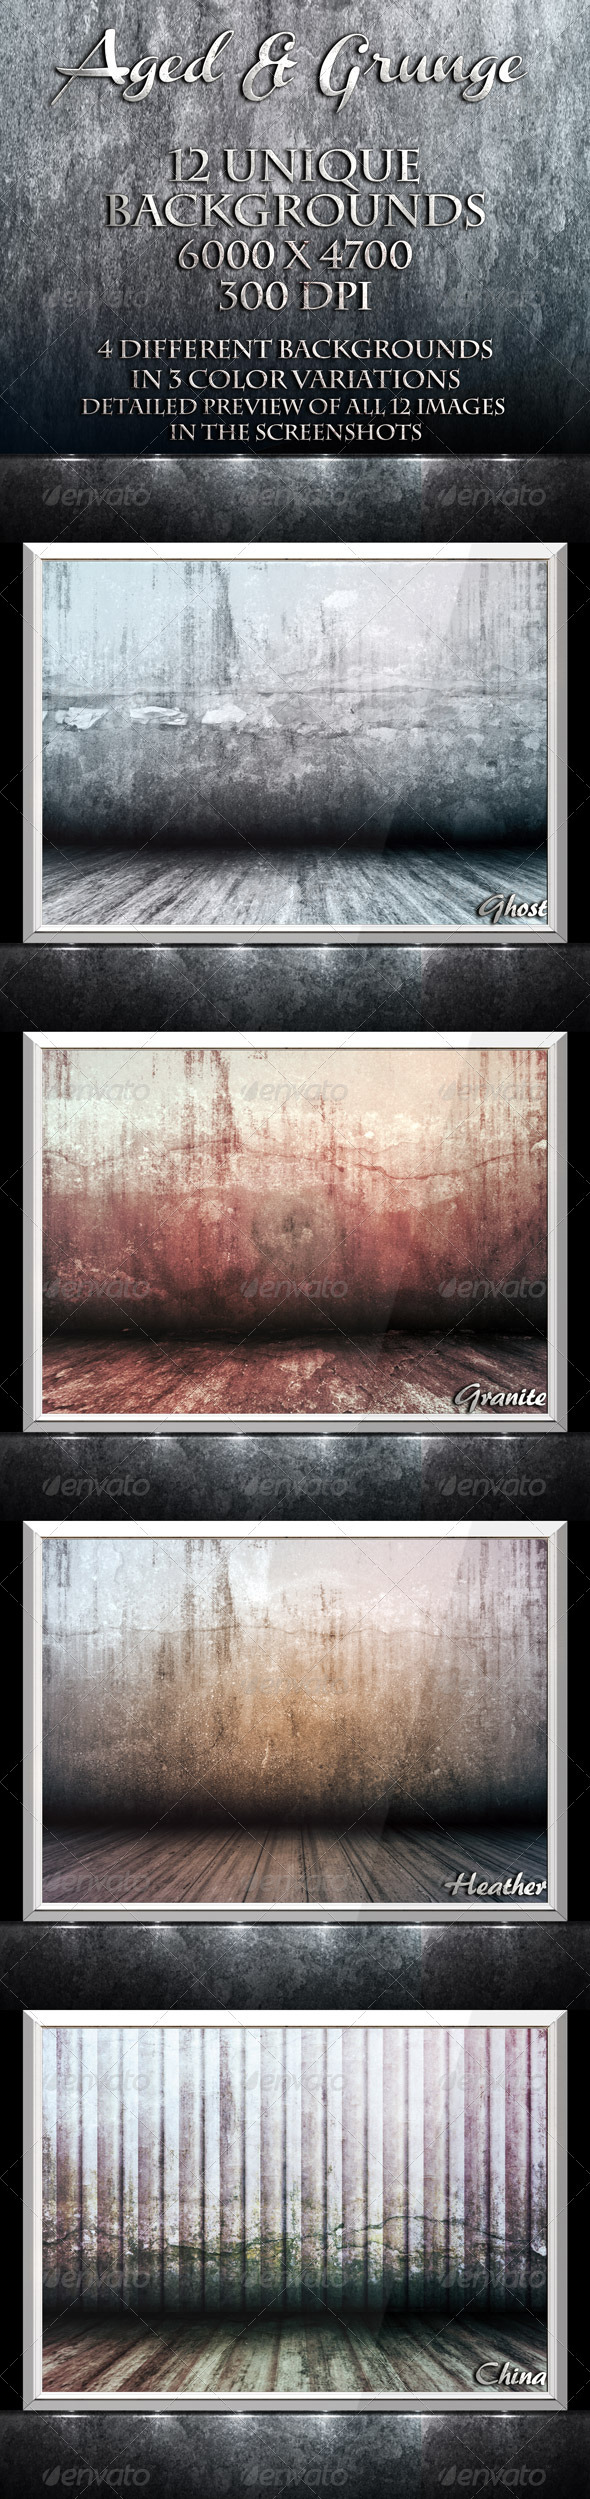 GraphicRiver Aged & Grunge 12 Unique Backgrounds 1471717